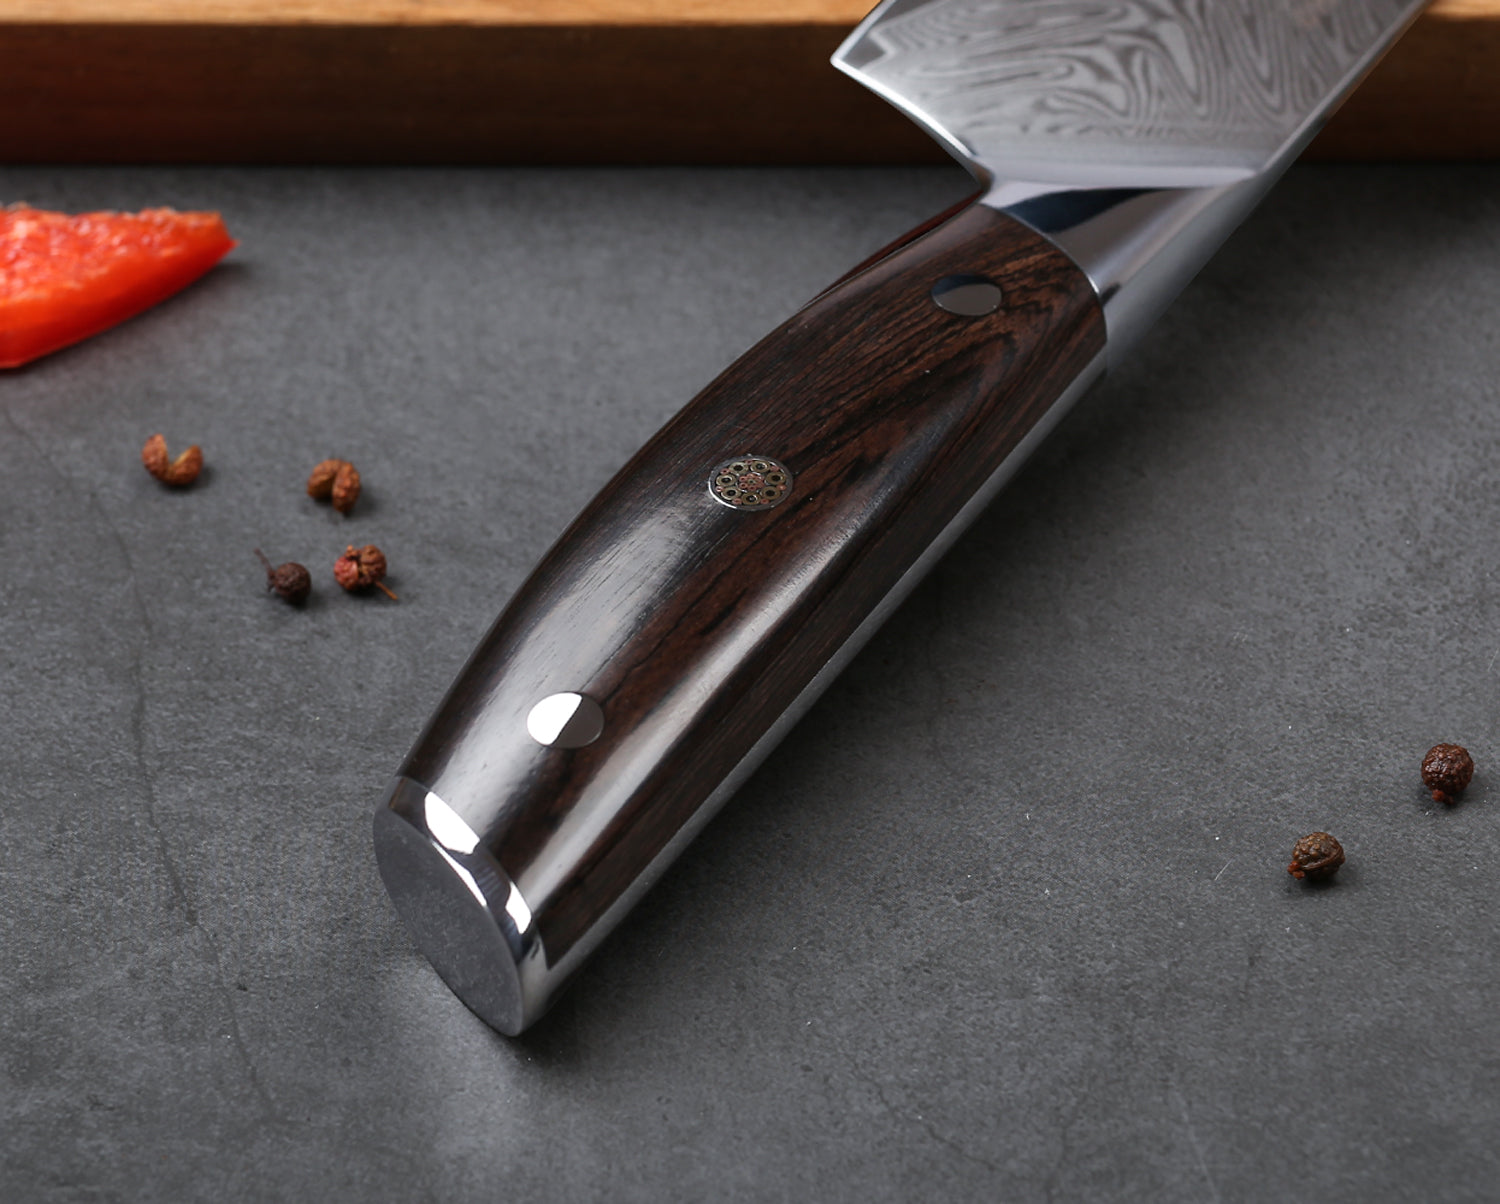 """Those scalloped granton edges add air between the knife blade and the material being cut, making it easier to remove the material from the blade. So, if you were slicing something thinly, you'd want to use this knife. Also, the word """"santoku"""" means """"three virtues"""" and applies to this knife due to its triad of abilities – chopping, dicing, and mincing. This is a very good general all-purpose knife to use for many jobs."""